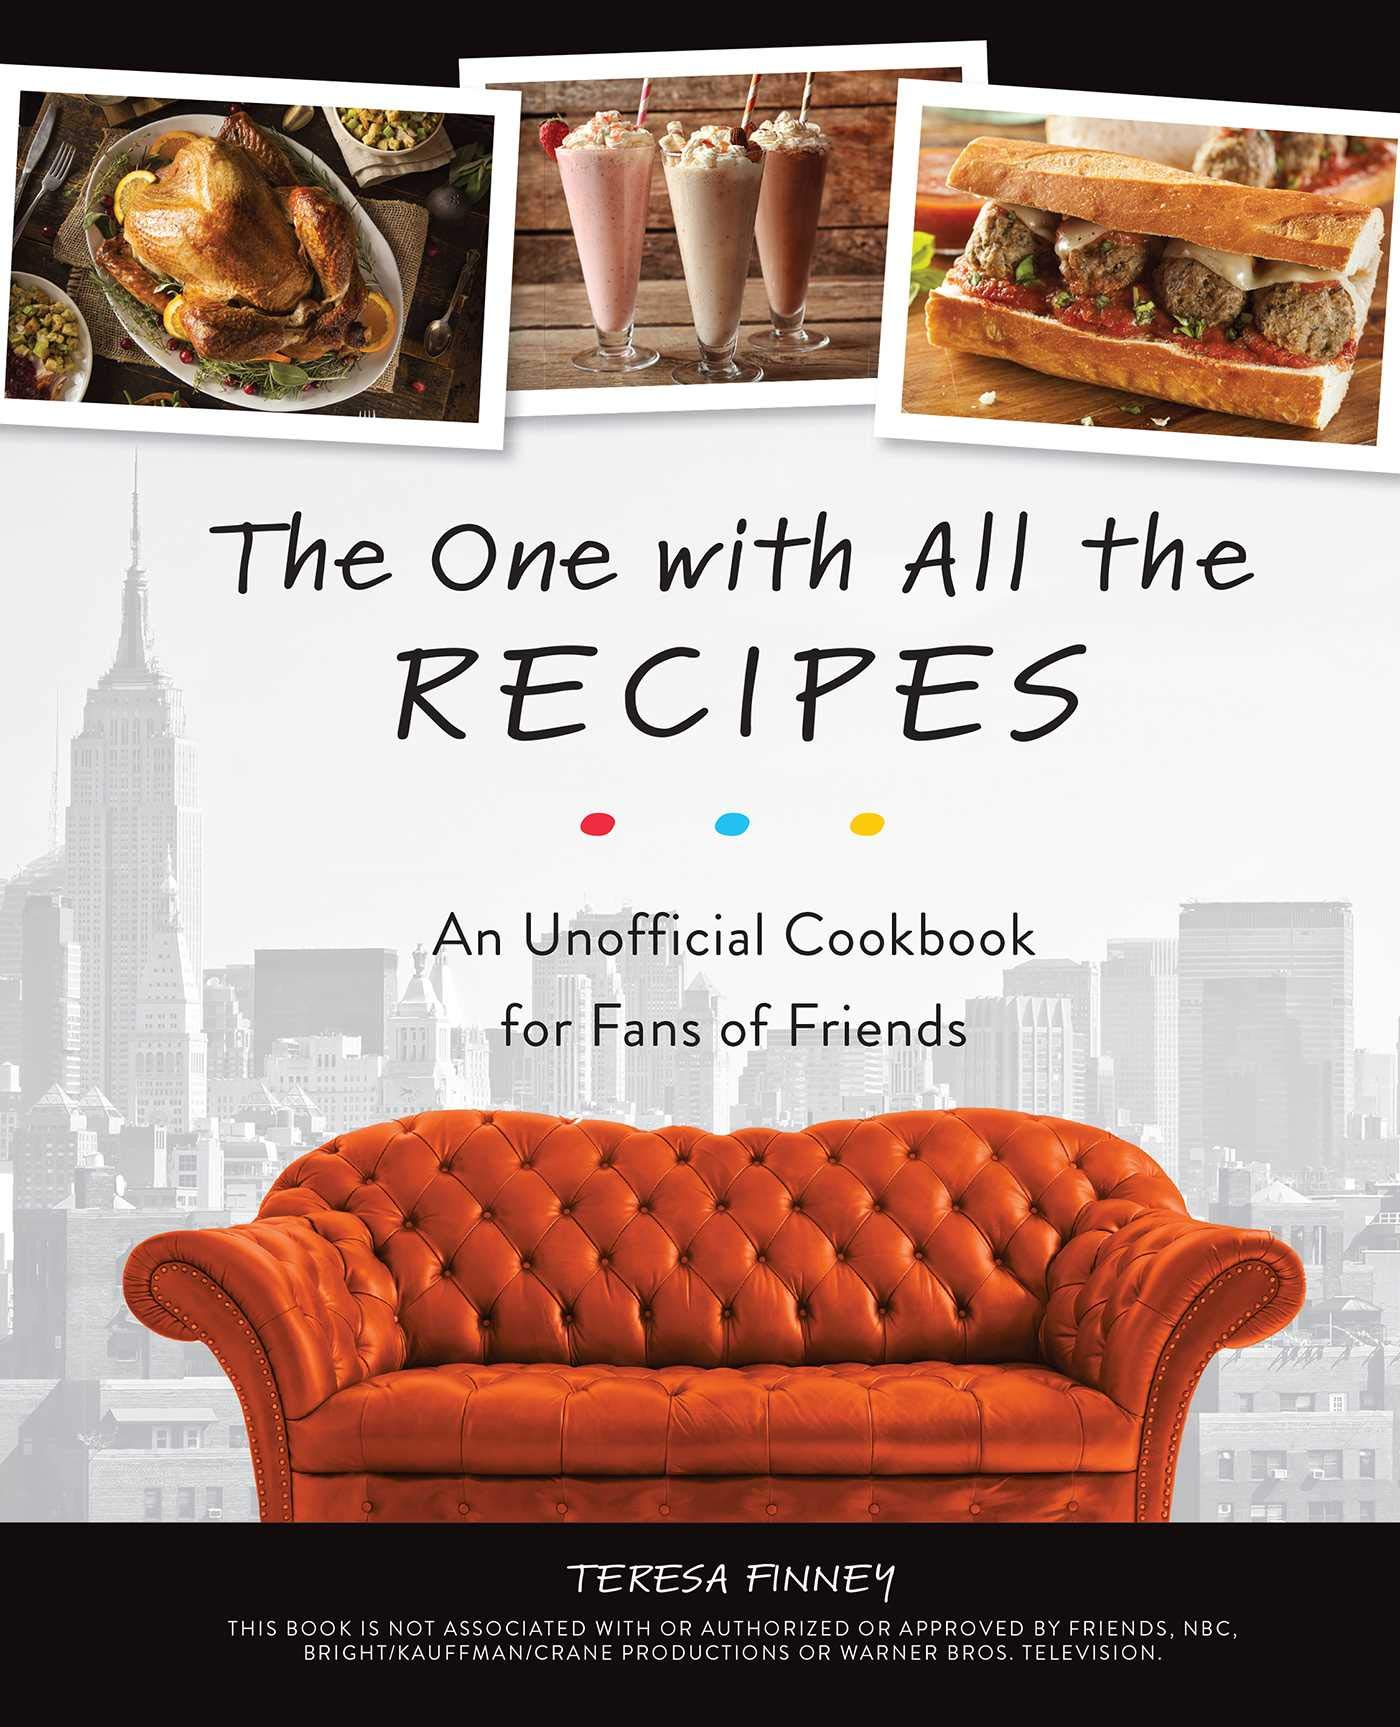 Amazon Com The One With All The Recipes An Unofficial Cookbook For Fans Of Friends 9781612438641 Finney Teresa Books